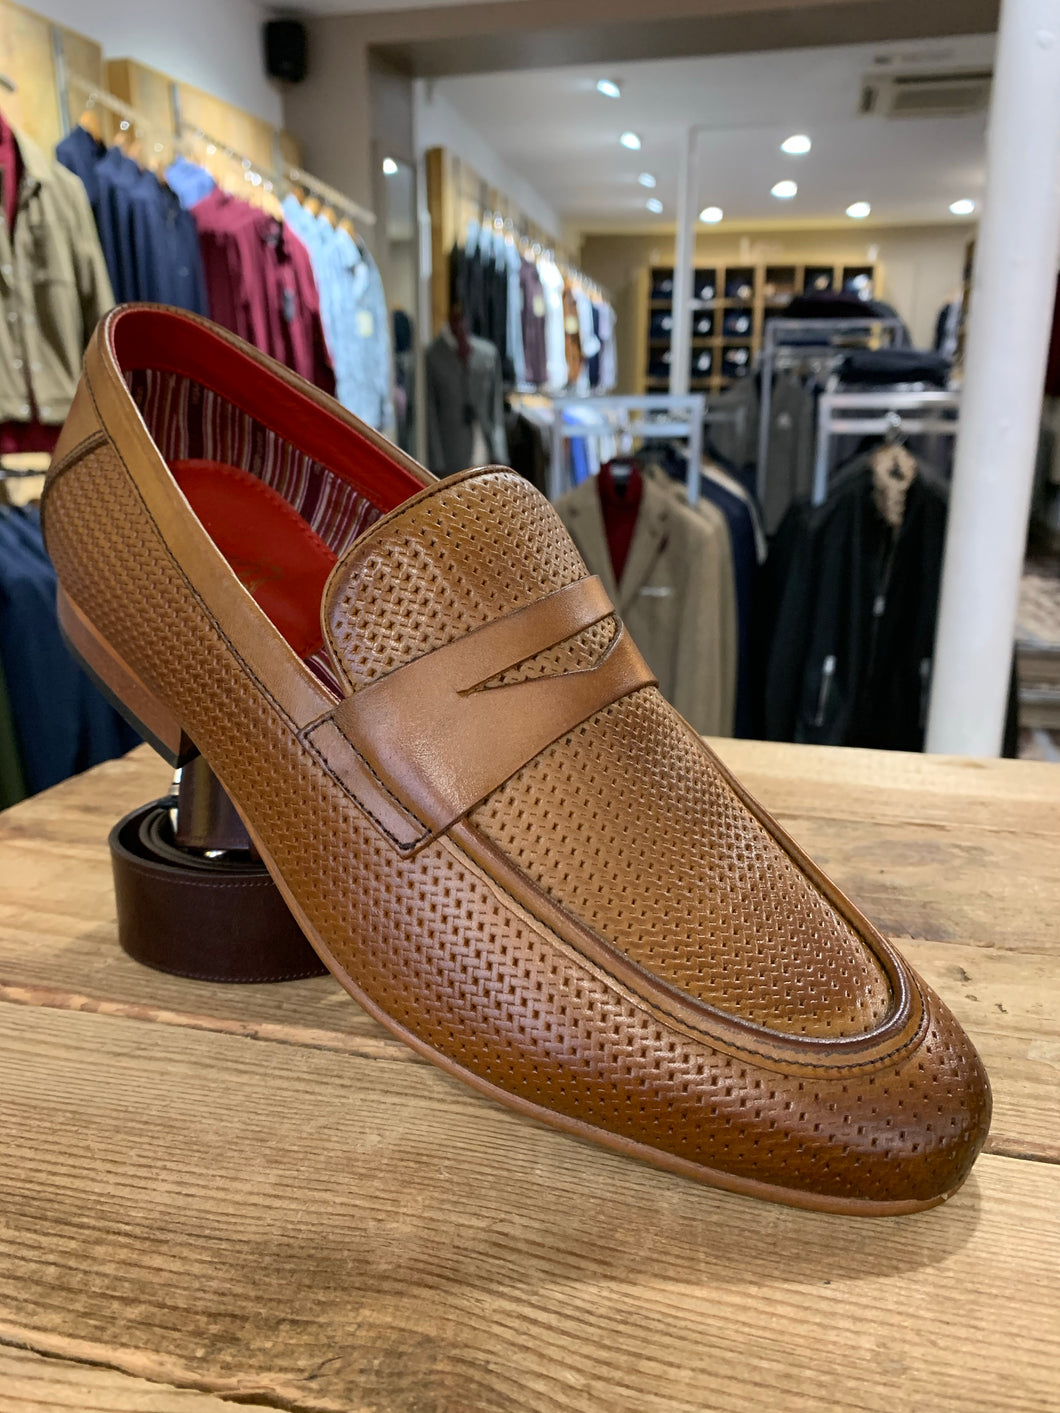 Base London woven effect loafer from Gere Menswear